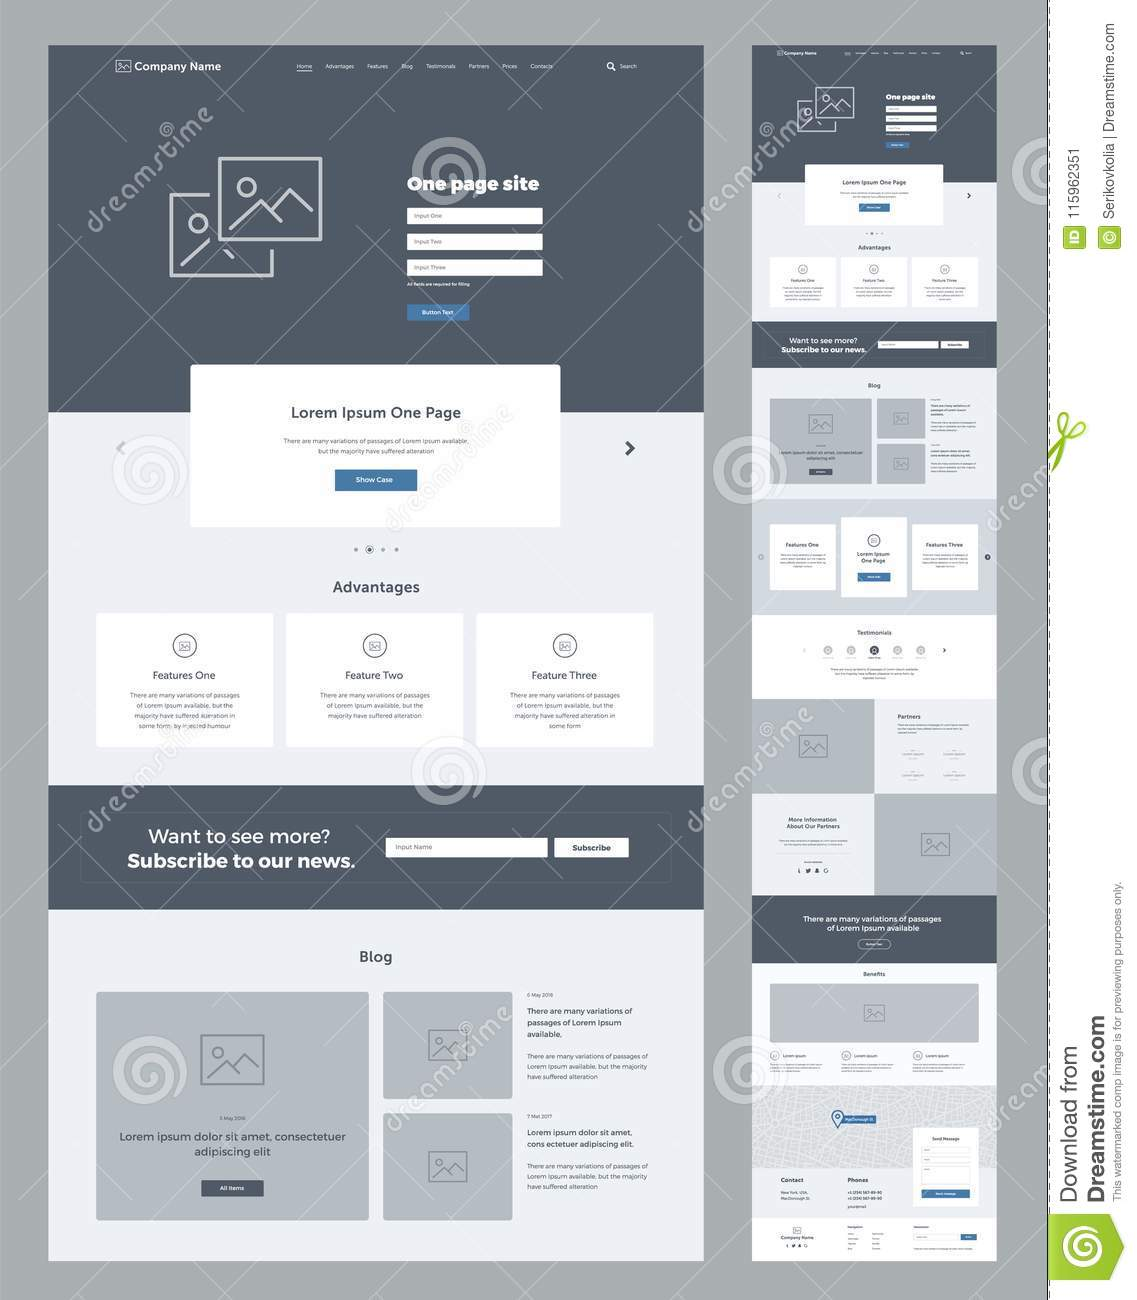 One page website design template for business. Landing page wireframe. Flat modern responsive design. Ux ui website.